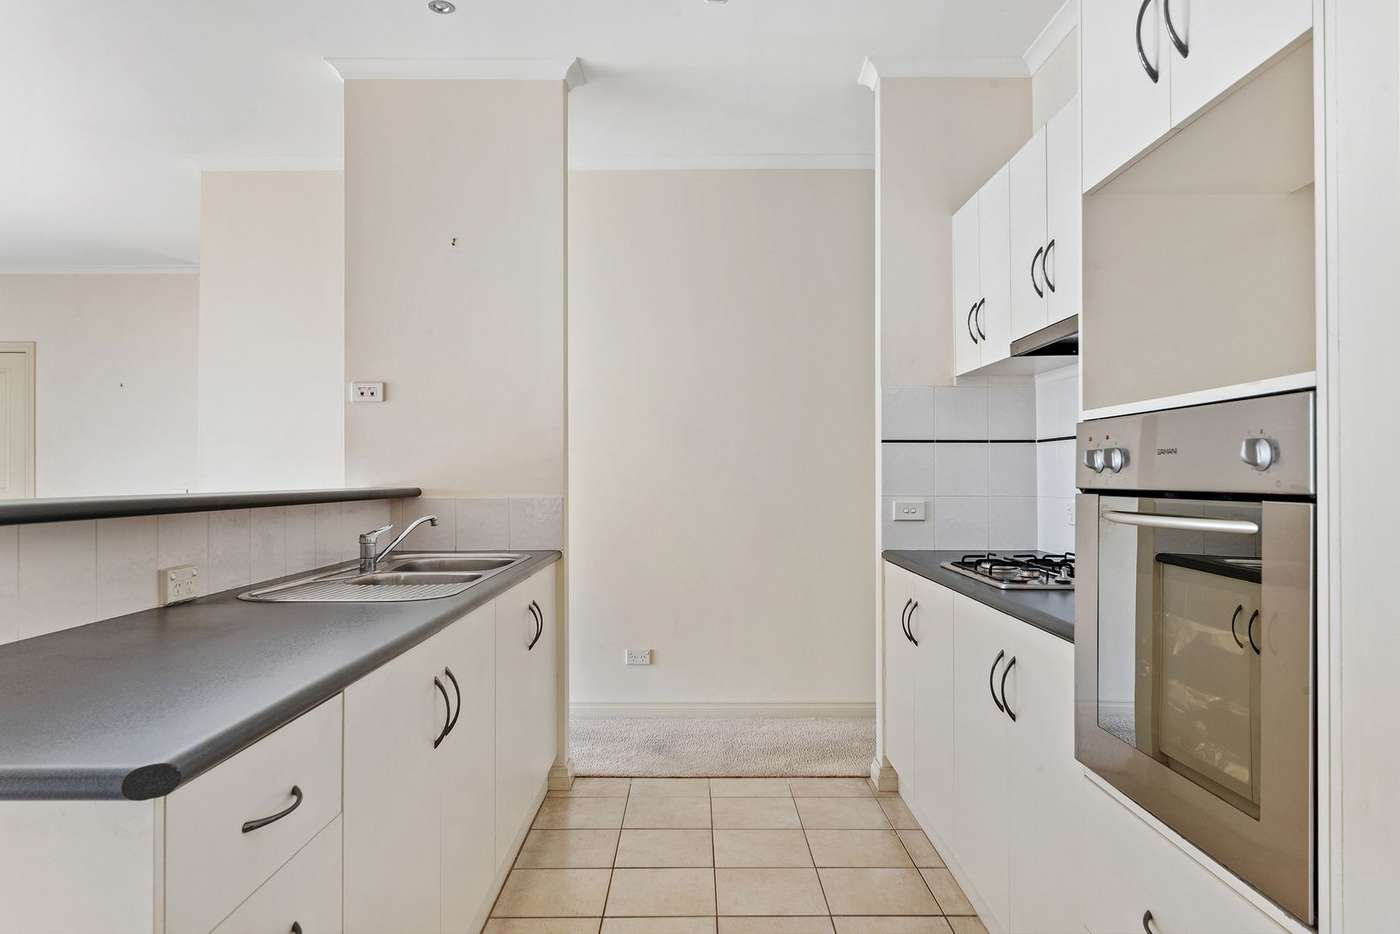 Fifth view of Homely house listing, 19 Irkara Drive, Kennington VIC 3550